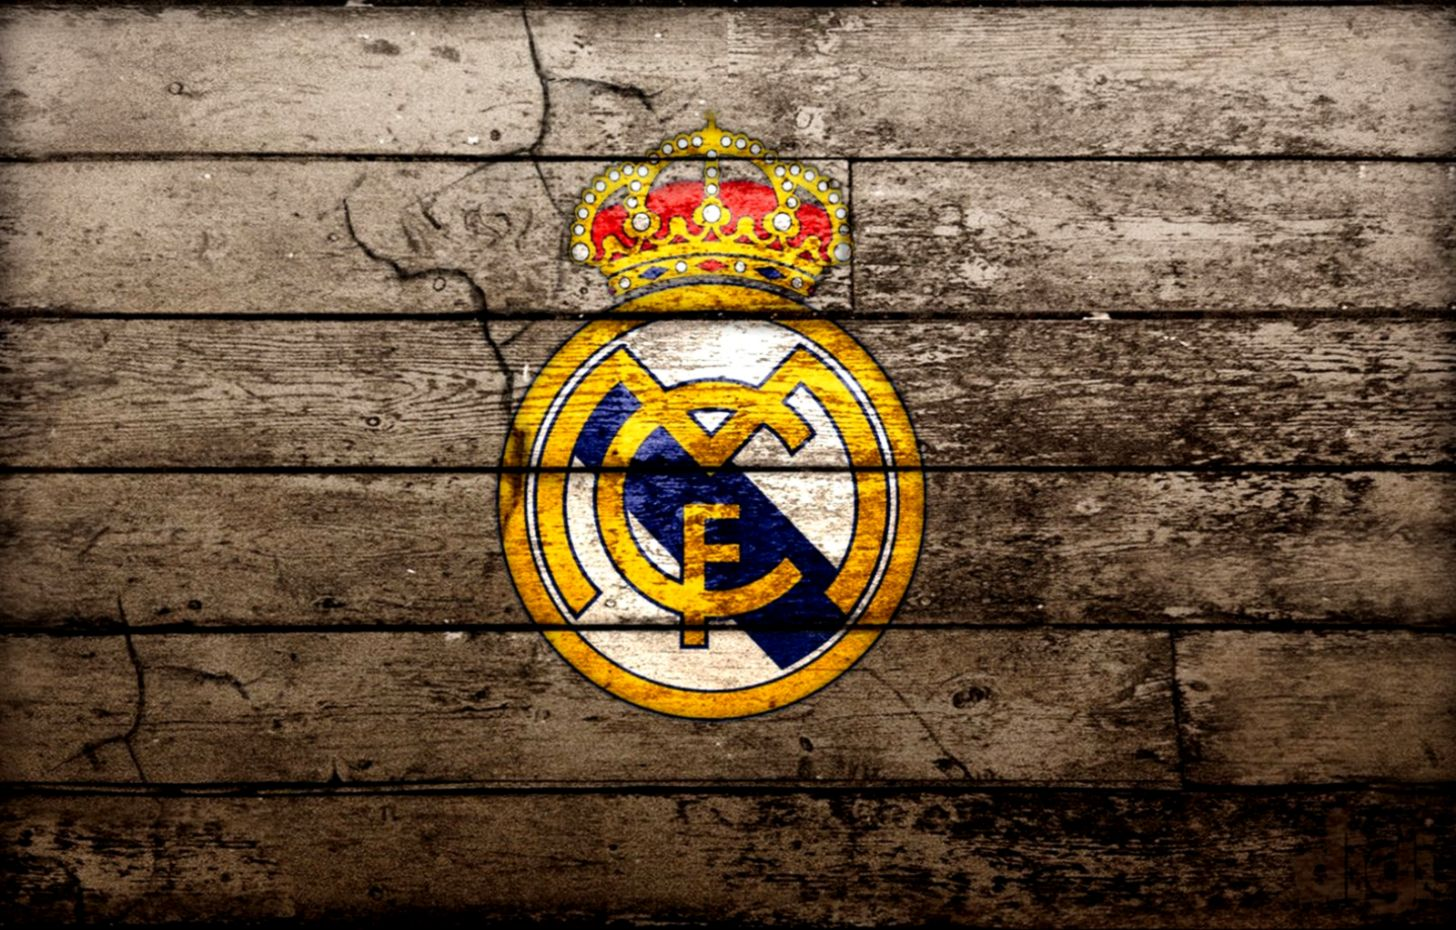 Real Madrid Wallpaper Gratis Wallpapers 1080p